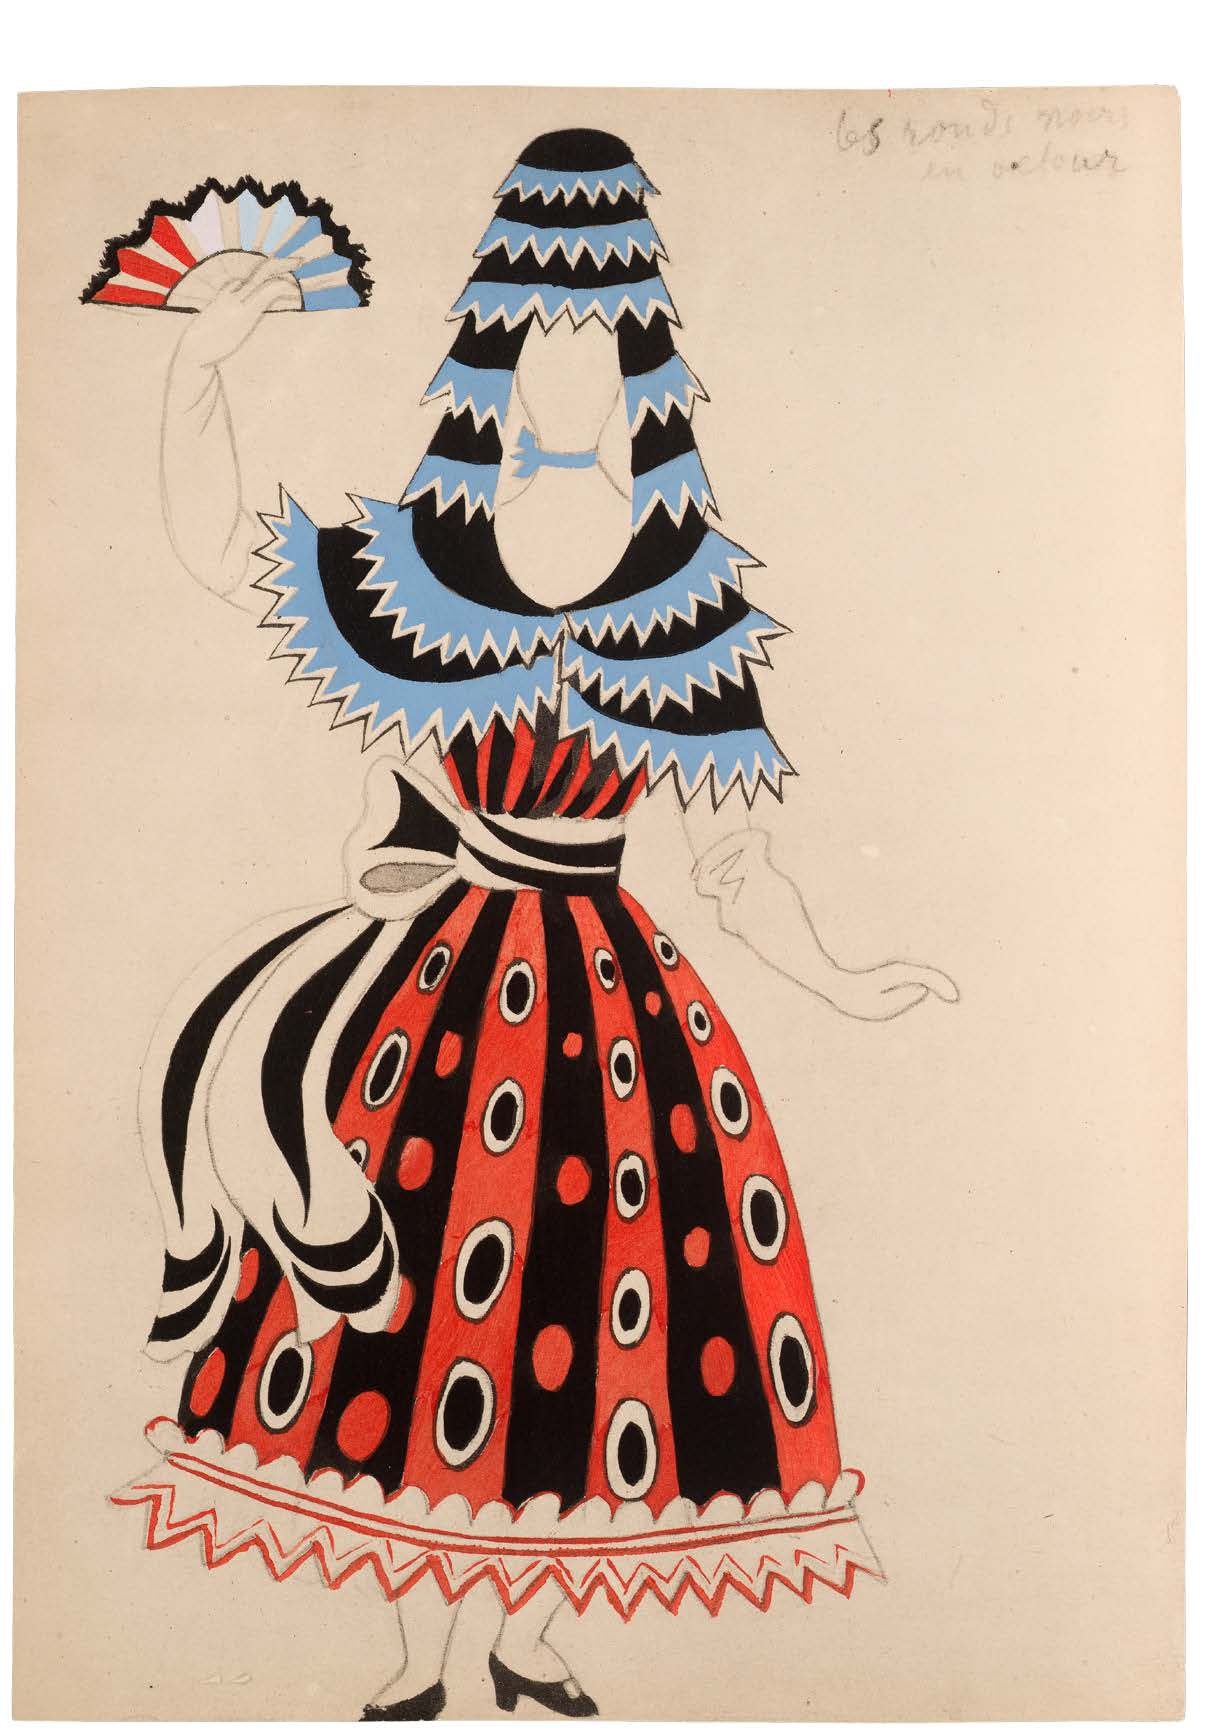 Pablo Picasso, costume design for female dancer for Le Tricorne, or El Tricornio (The Tri-Cornered Hat), Spain, 1920. Gift of Robert L. B. Tobin. Courtesy of the McNay Art Museum.